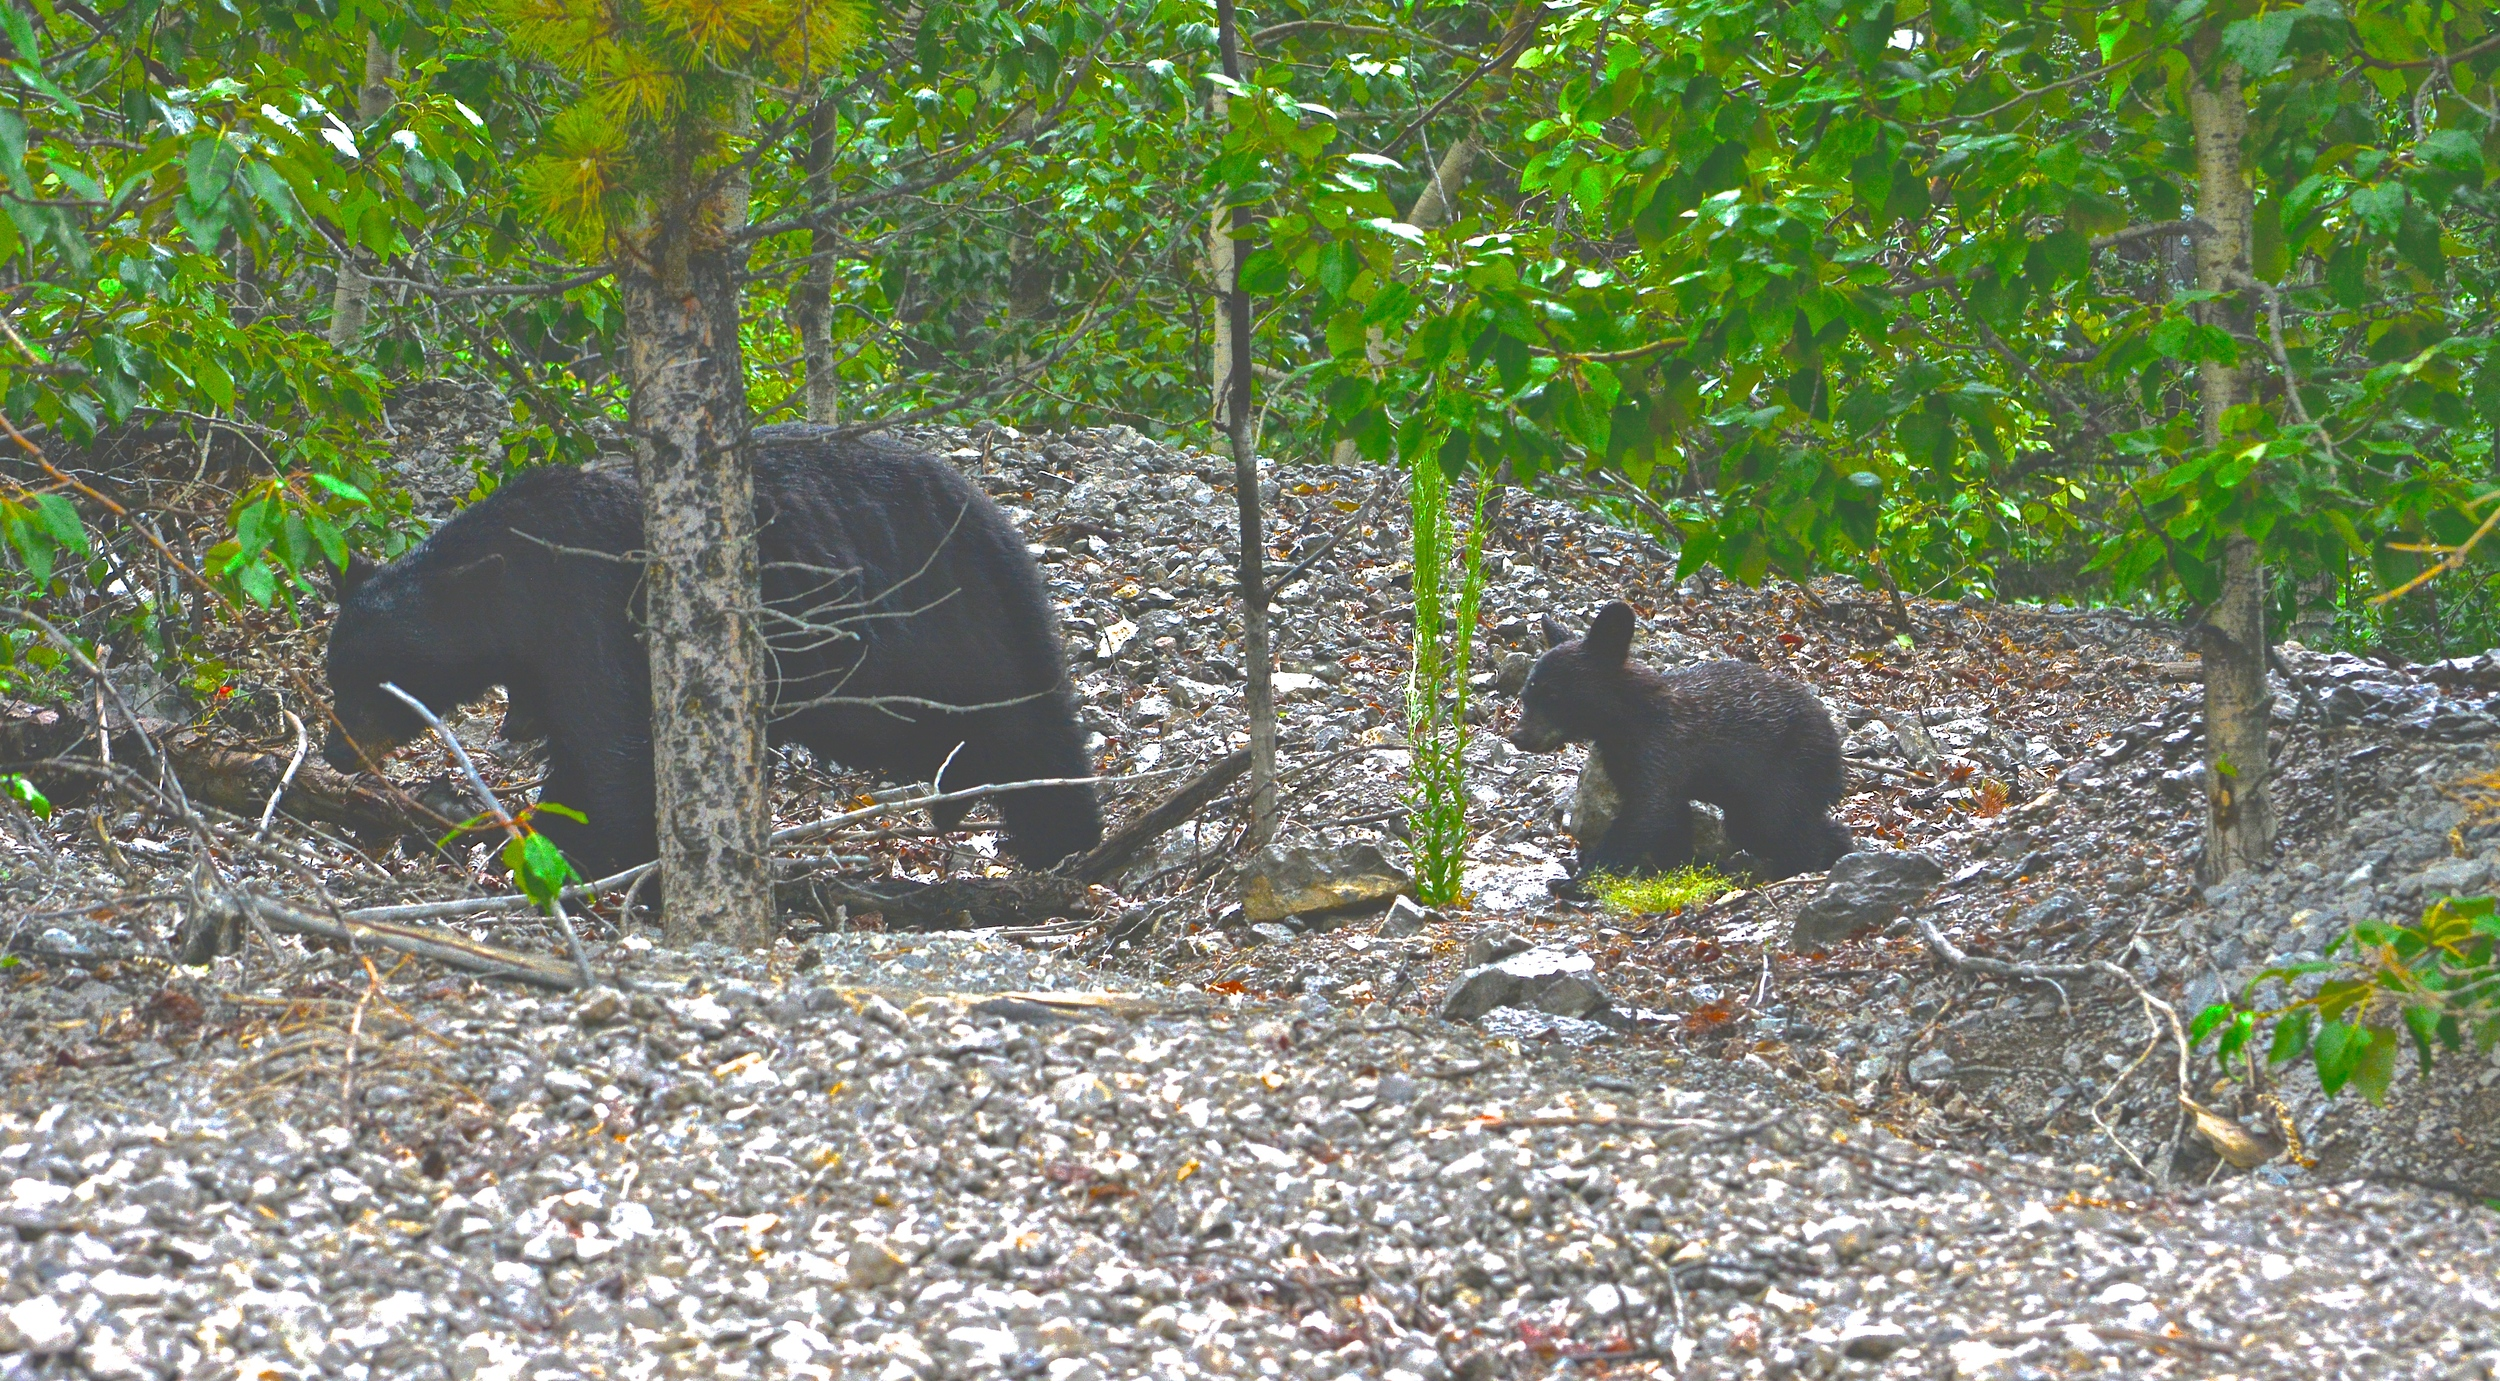 Momma black bear and baby cub (the picture looks a little funny due to the lack of exposure on the original, had to edit so you can see the little cub!)